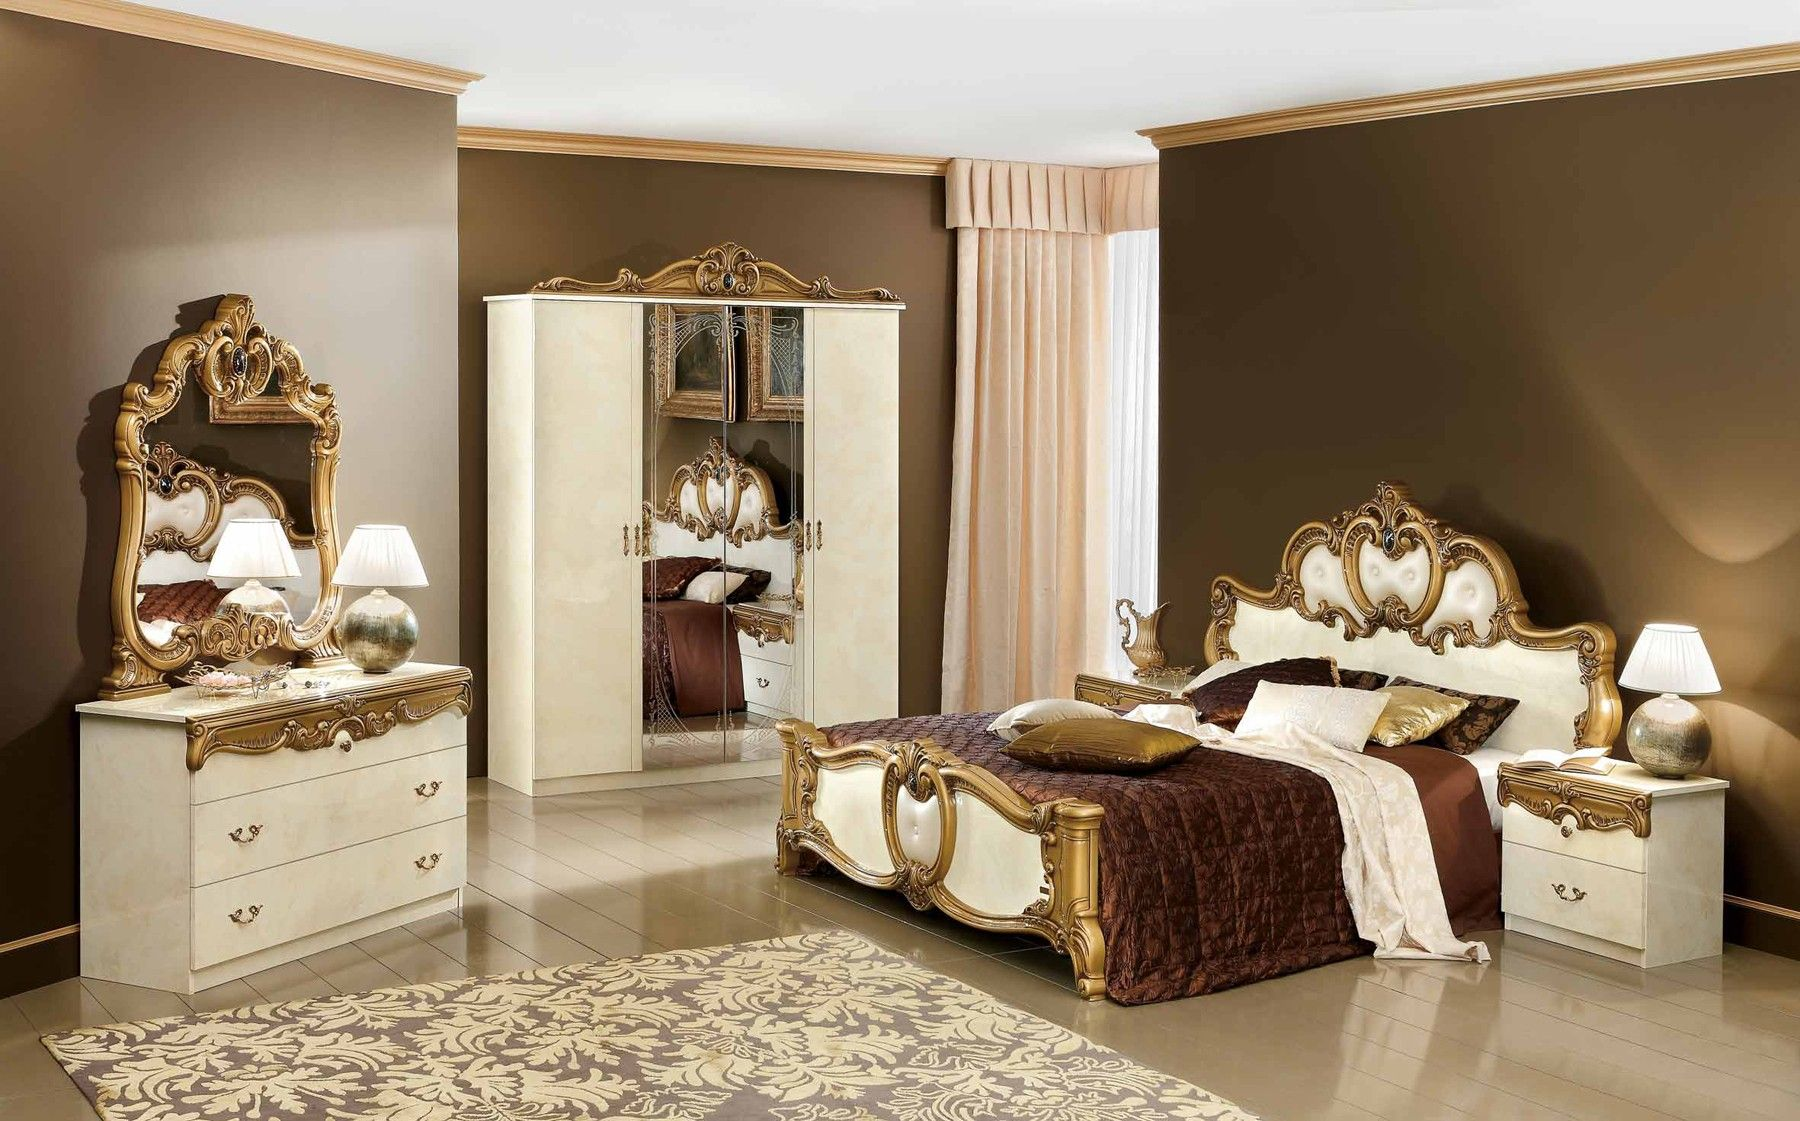 25 Italian Bedroom Suite Design The Very First Thing You Ought To Take Into Consideration As Yo Schlafzimmer Design Klassisches Schlafzimmer Luxusschlafzimmer